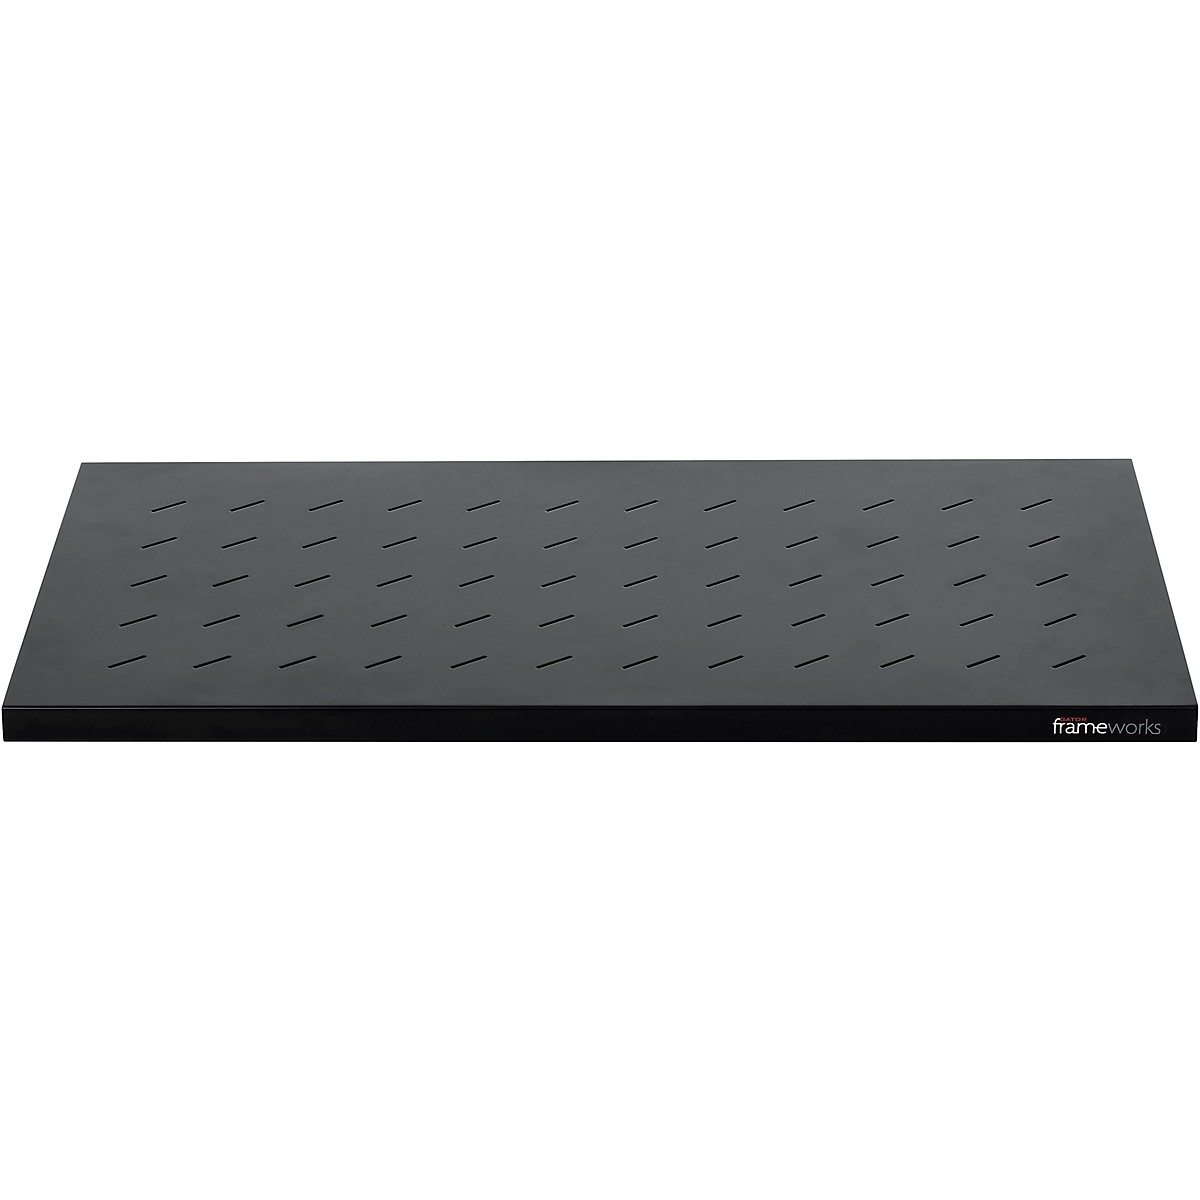 Gator GFW-UTL-XSTDTBLTOP Table Top for X-Style stands